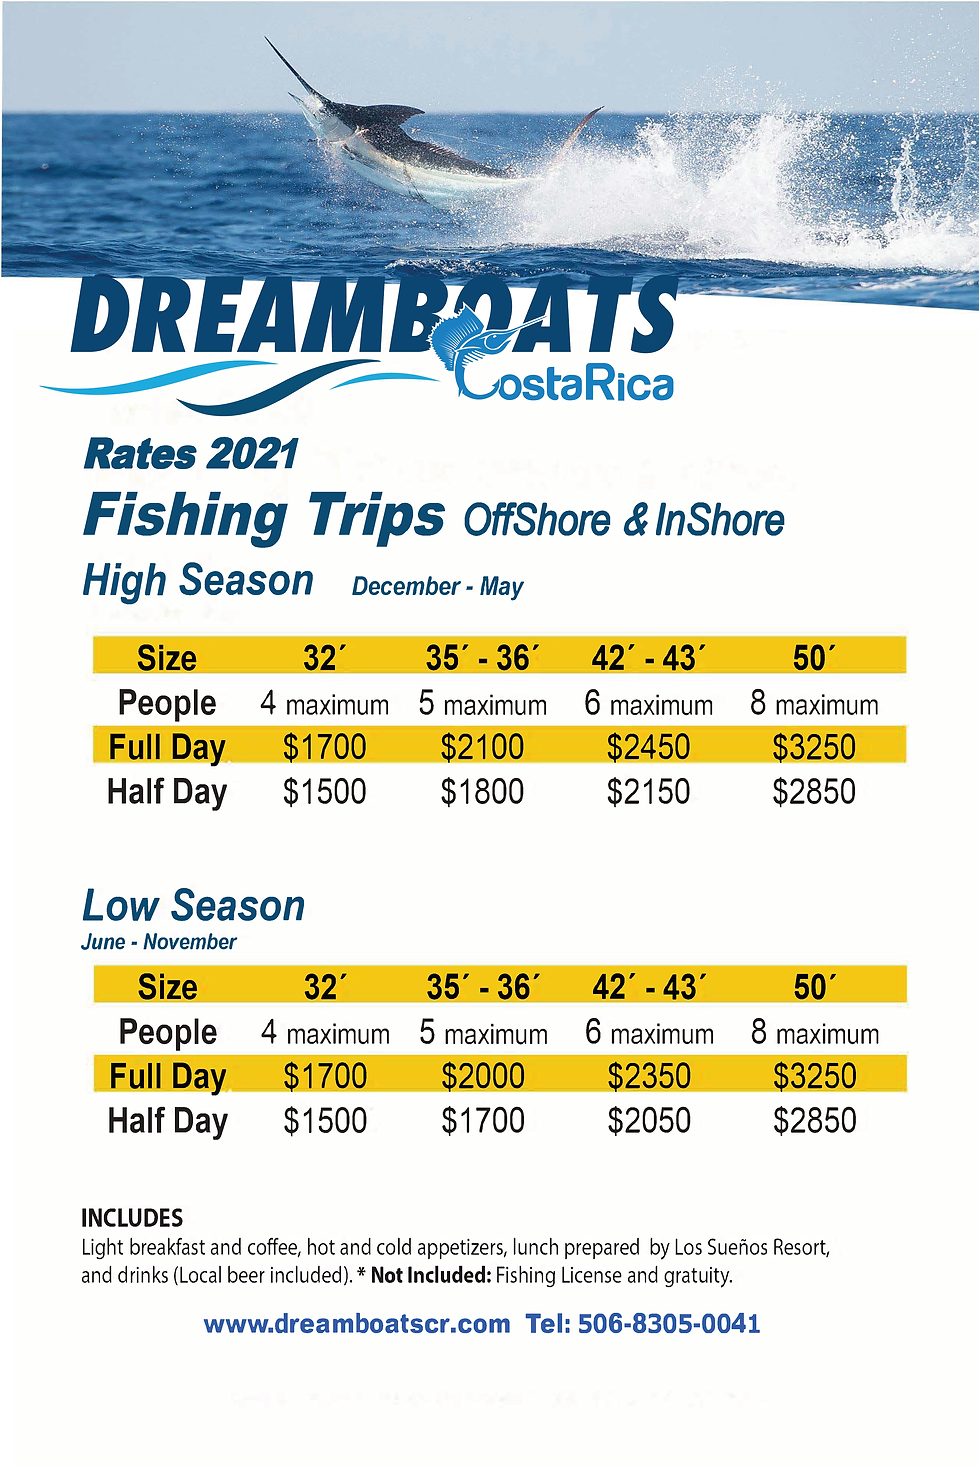 Dreamboats Pricing.png